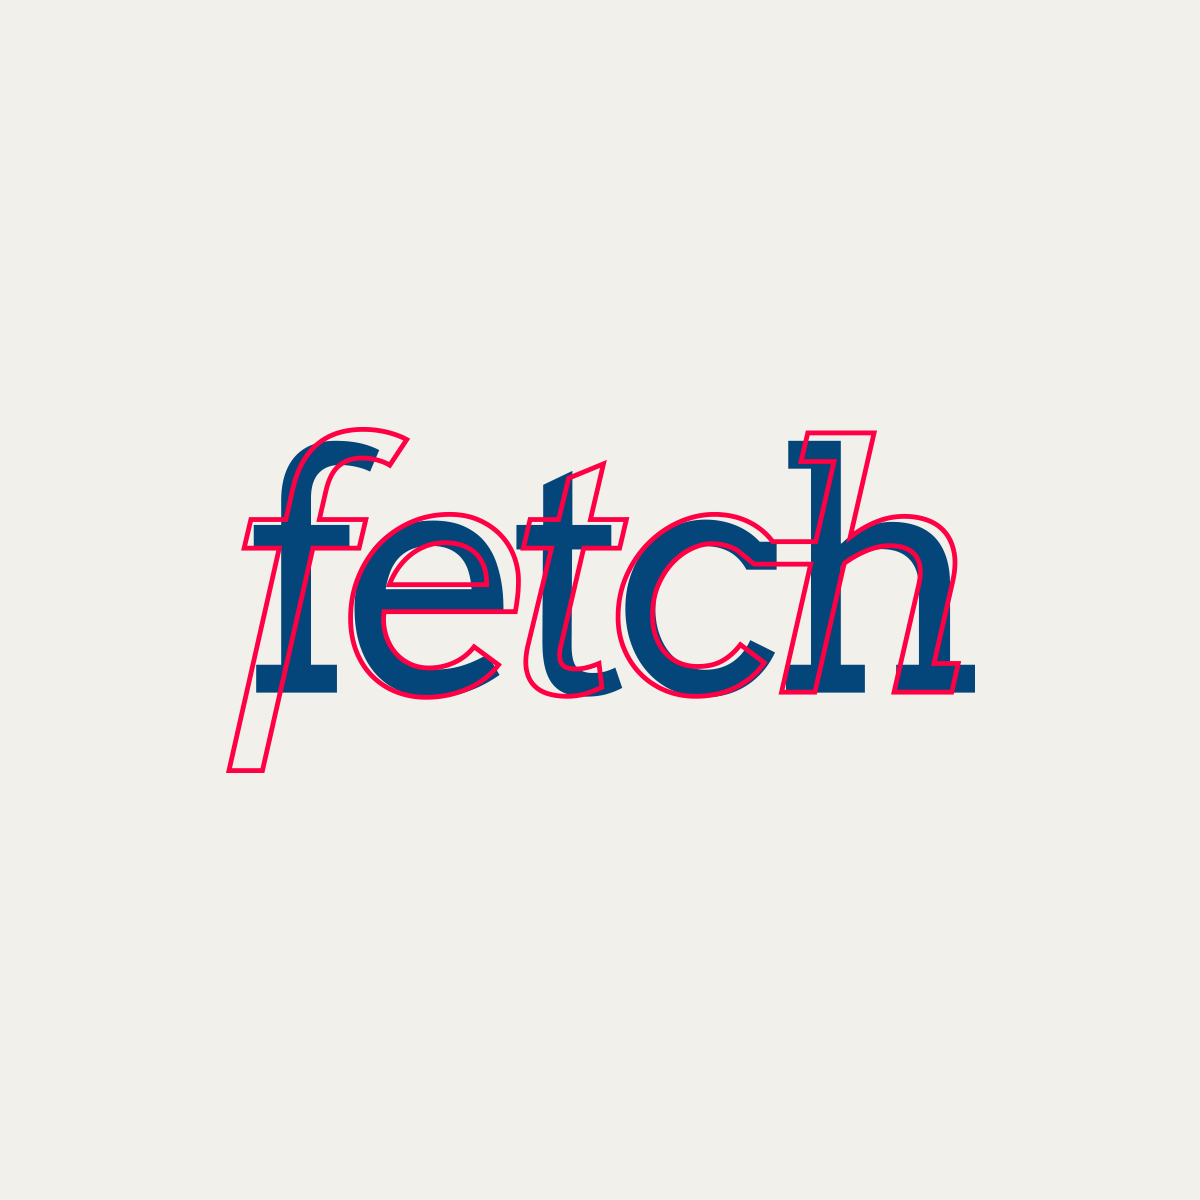 """Fetch's Logo - Fetch's vibrant, colorful brand needed an updated wordmark that matched its buzz and enthusiasm. I chose to keep Fetch lowercase to communicate youthfulness and italics to convey progress, motion, and excitement. The result was a modified version of Arvo Italic with an added """"ch"""" ligature that ties in their mission of connecting customers with small, local businesses."""